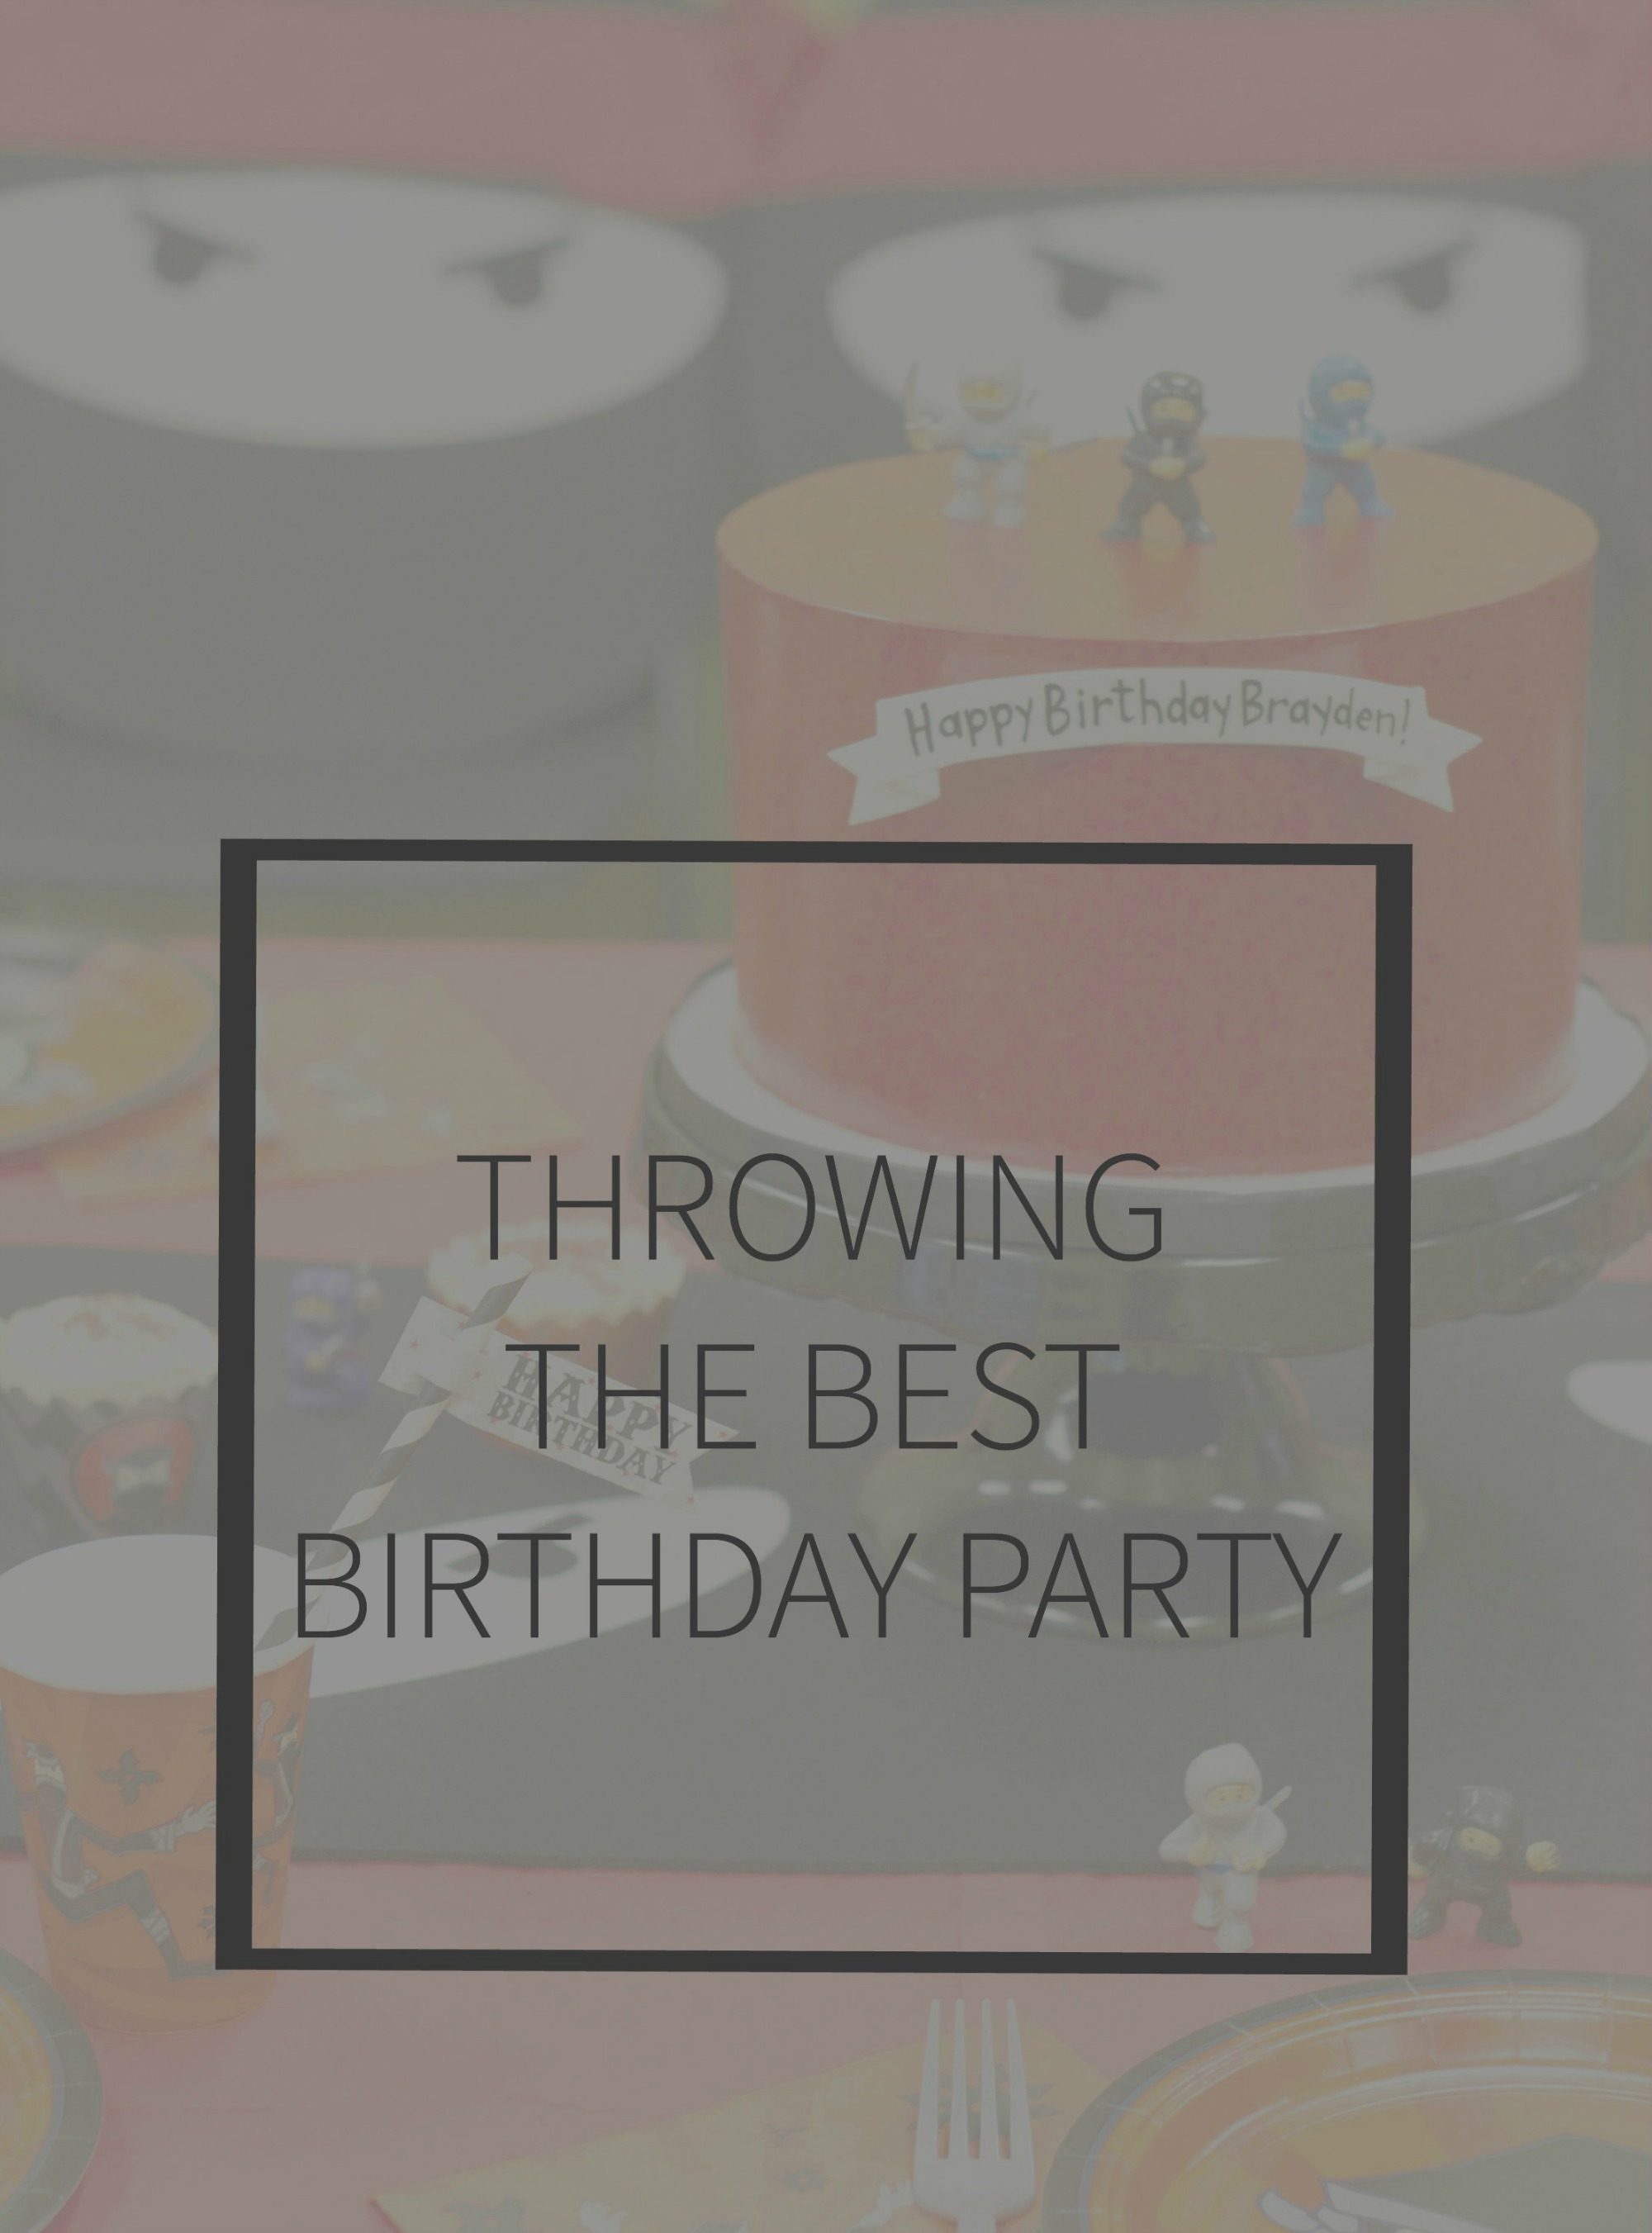 Throwing the best party